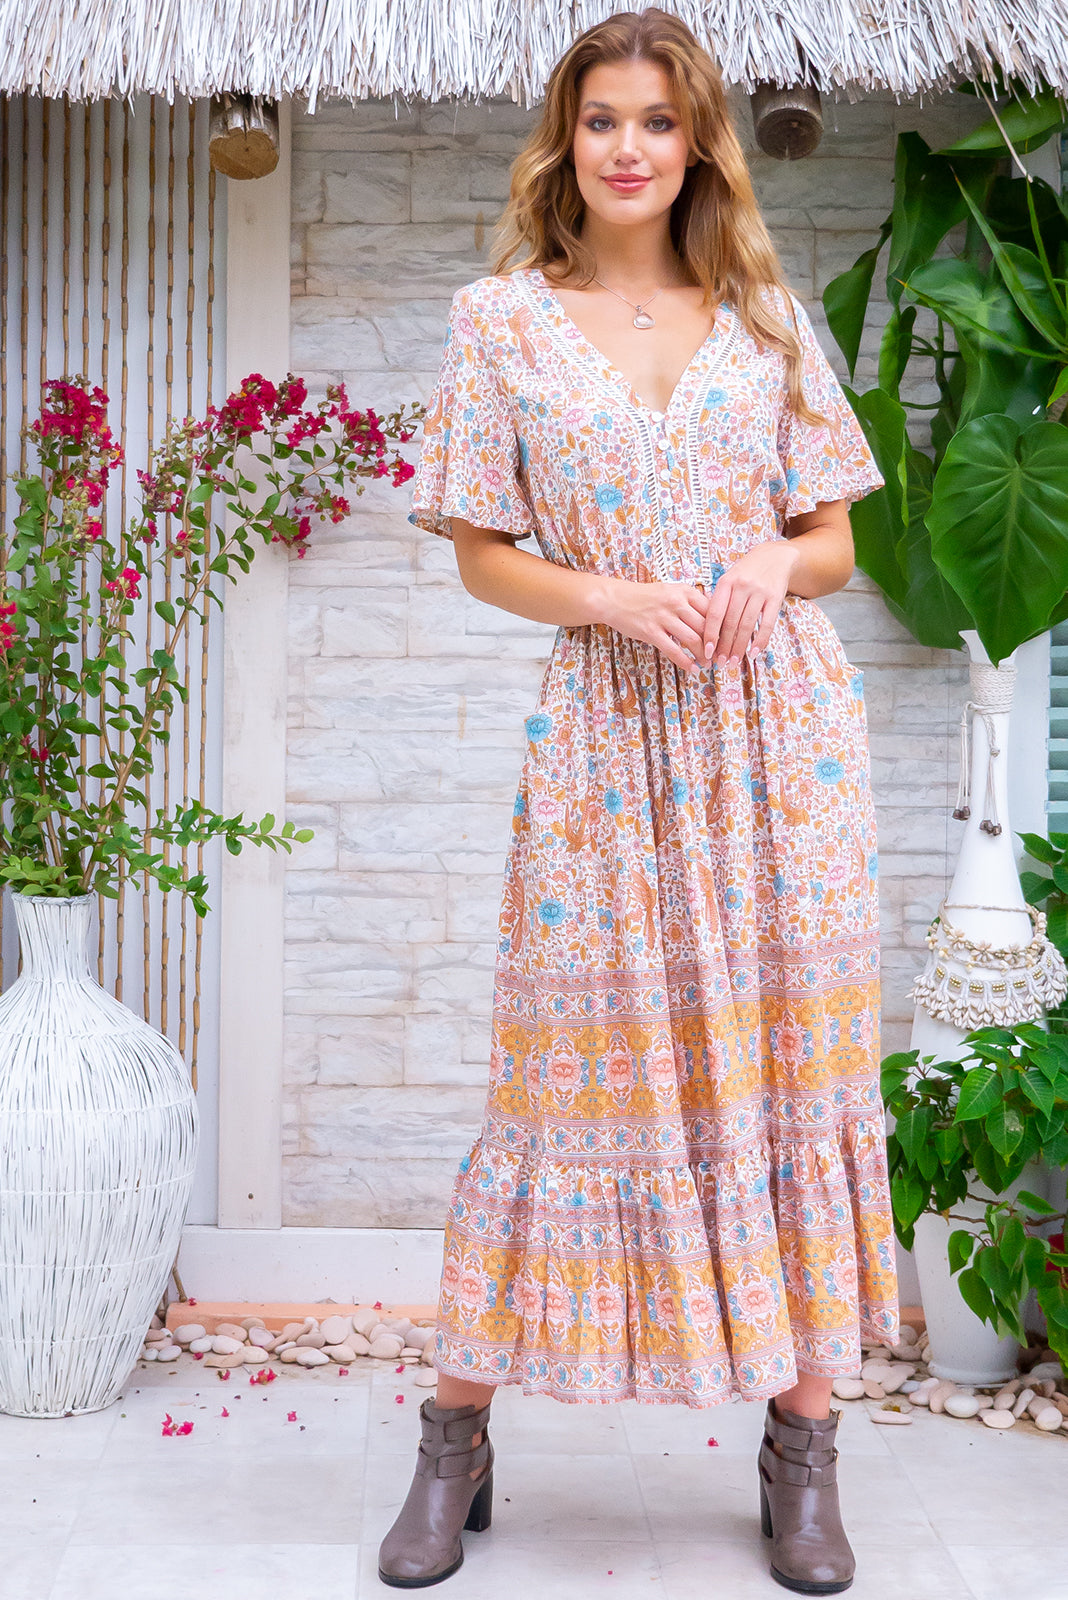 Dorothy Cream Midi Dress is a perfect boho dress featuring flutter sleeves, lace inserts in bust, functional button down detailing to elasticated waistline, frill hem on skirt with border print, midi length, cream base with folk/bohemian print in pinks, blue, beige and amber tones in woven 100% rayon.